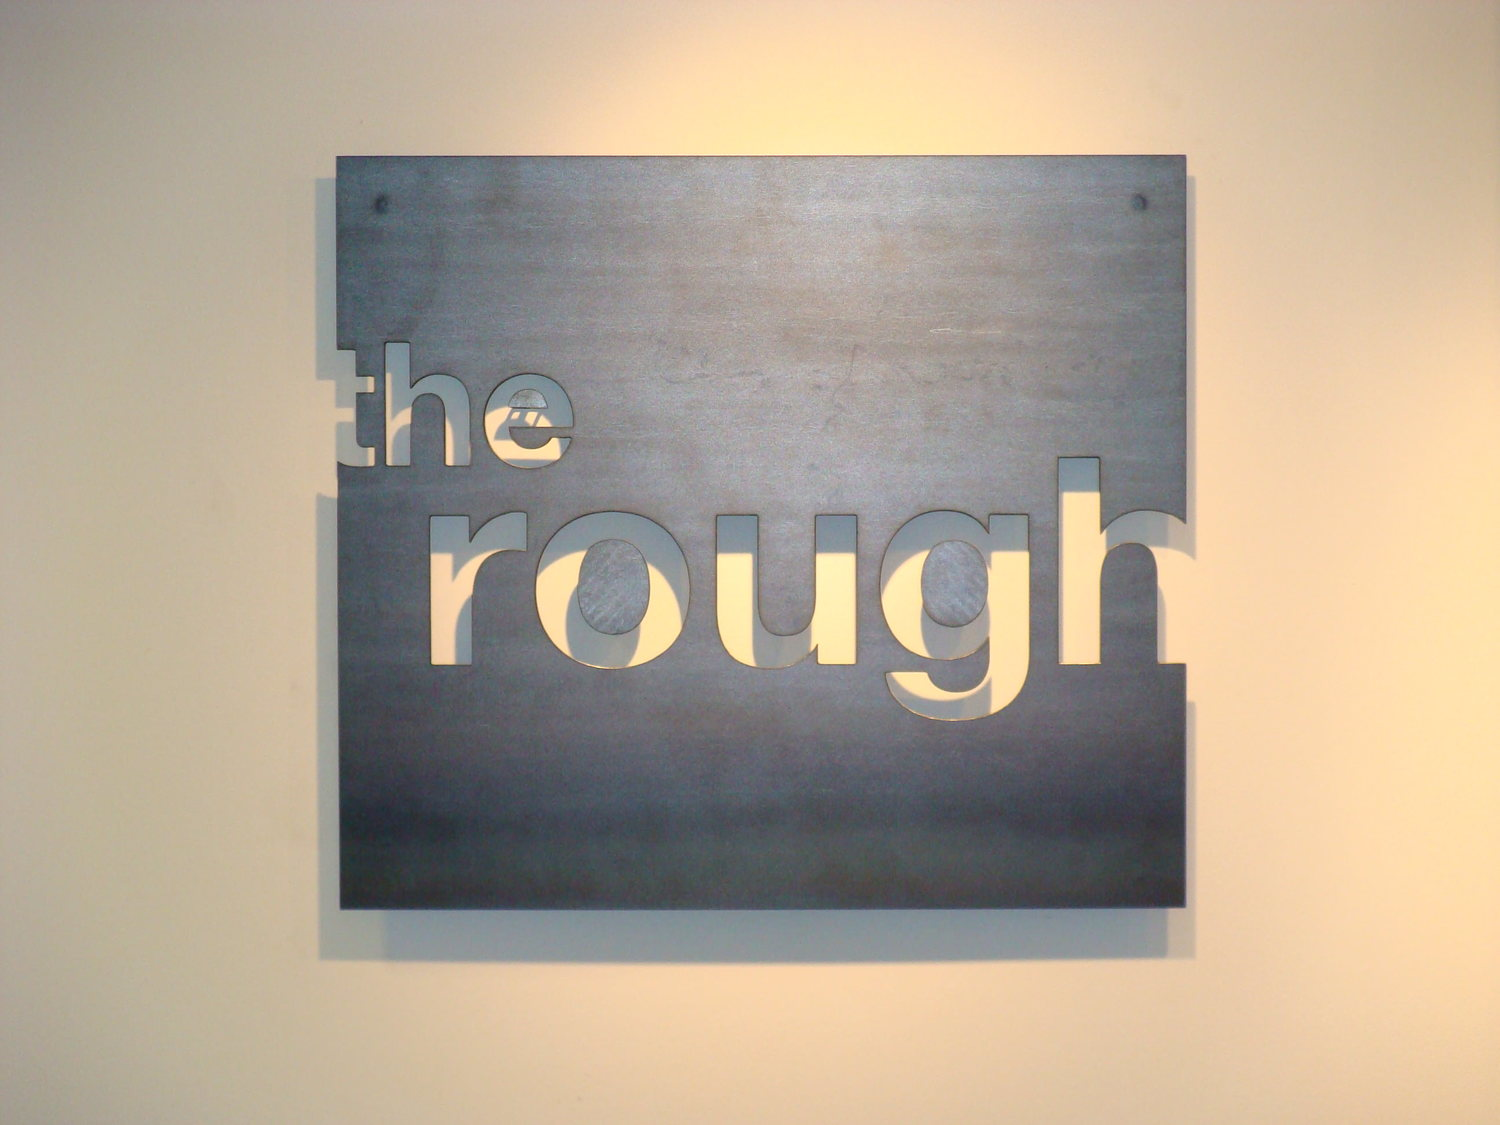 The Rough metal sign